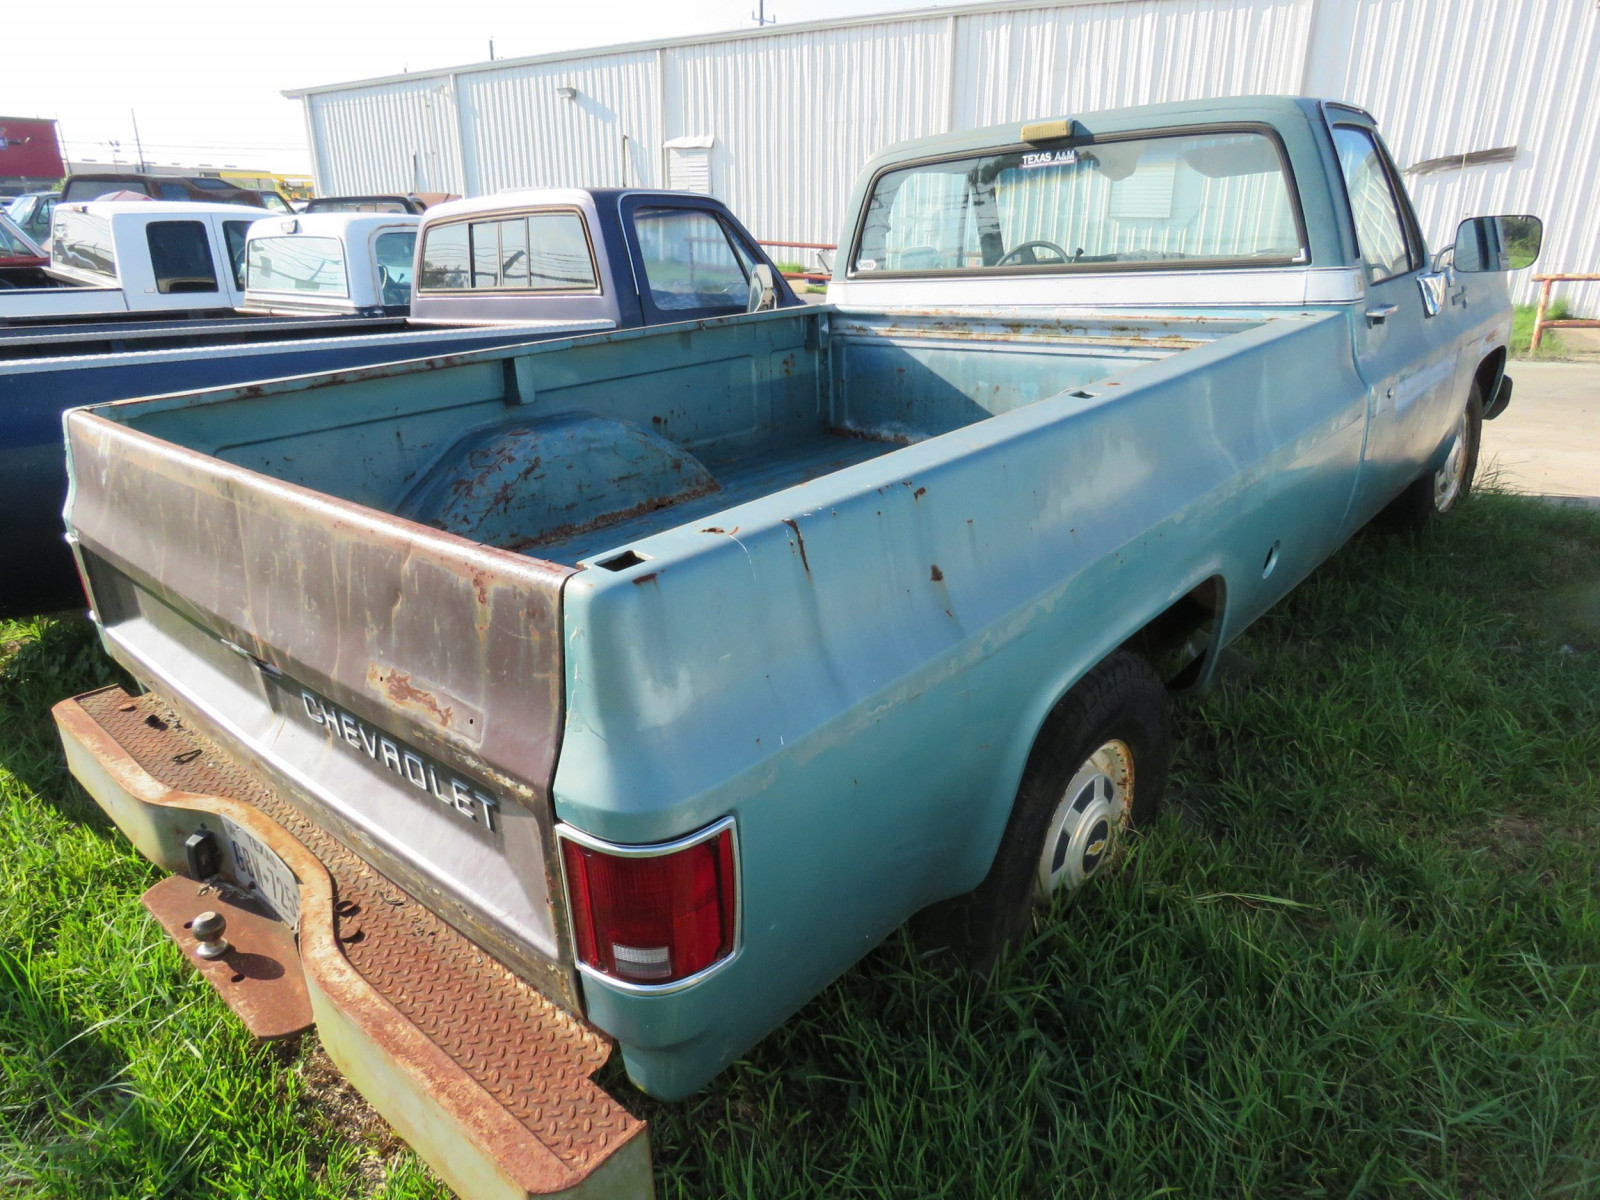 1978 Chevrolet C20 Scottsdale Pickup - Image 5